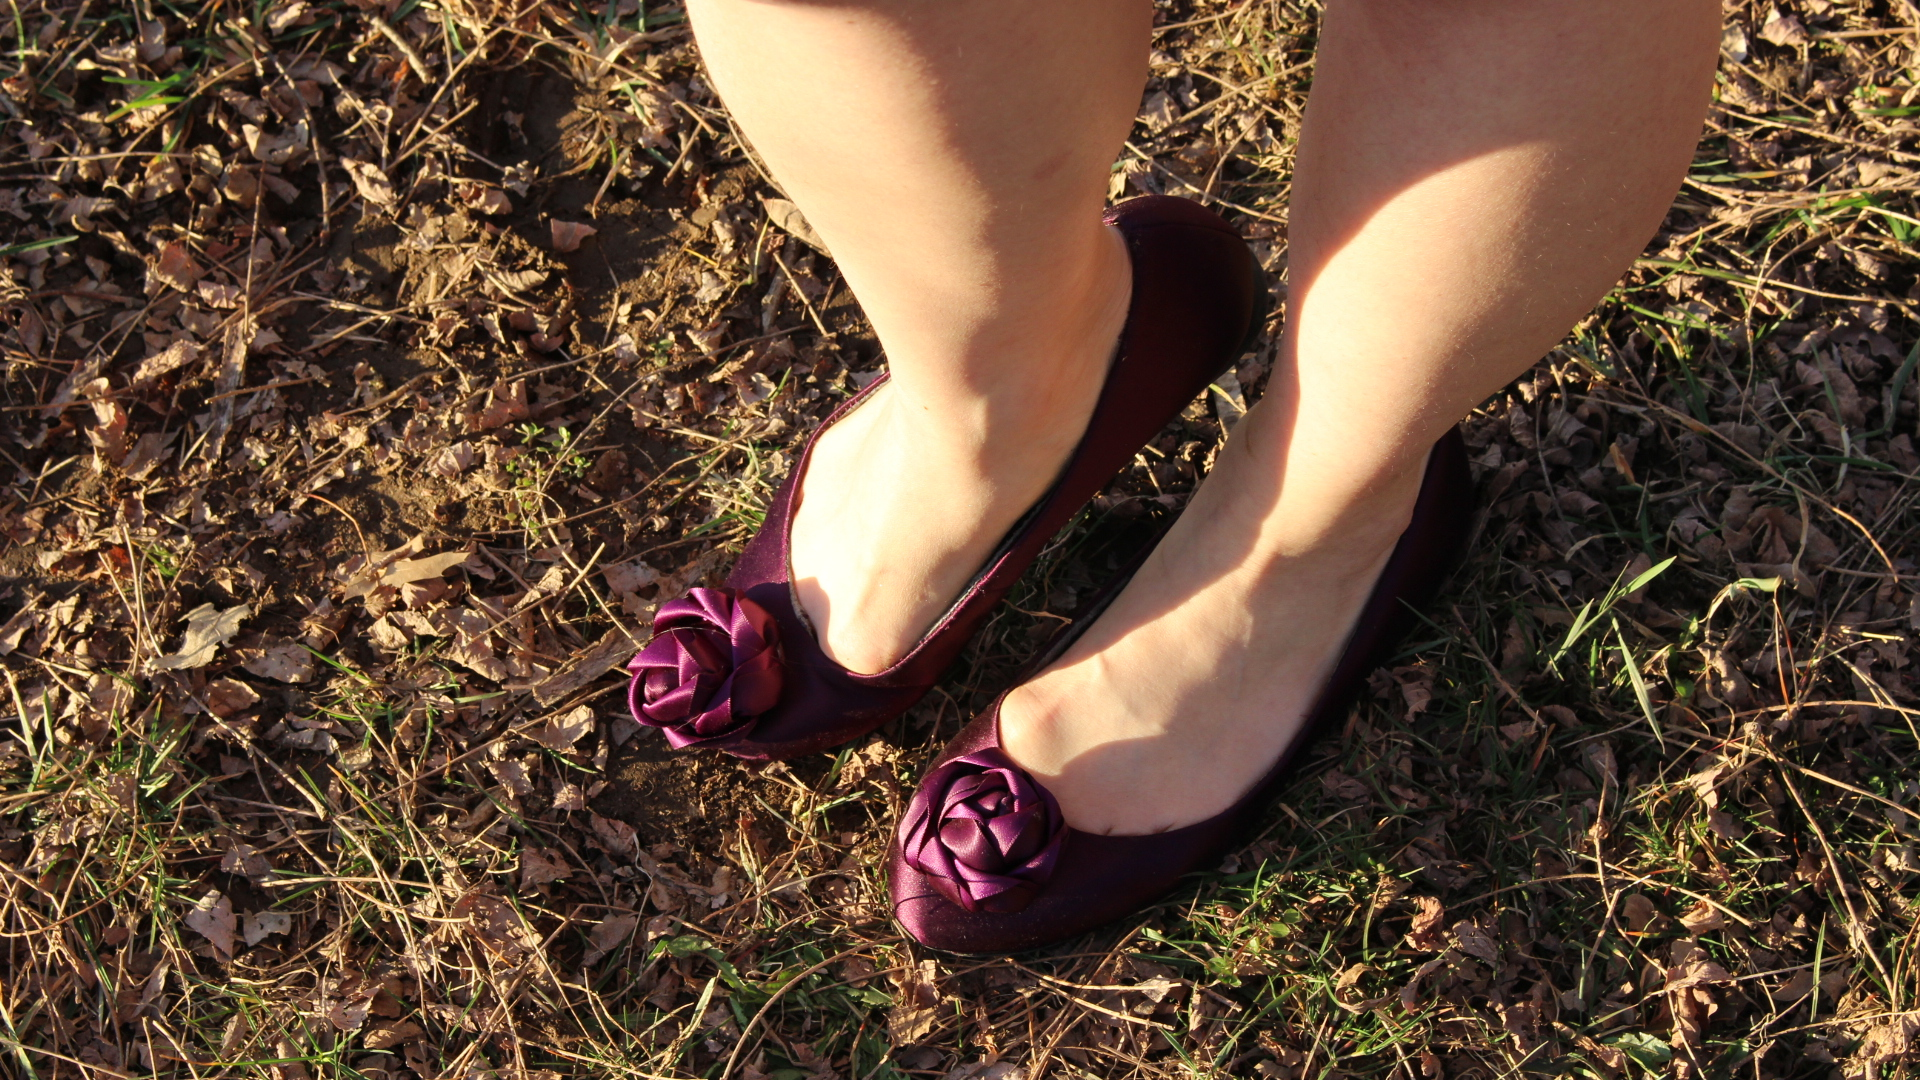 For that comfort factor, slip into these Paris Hilton purple satin Briana flats.